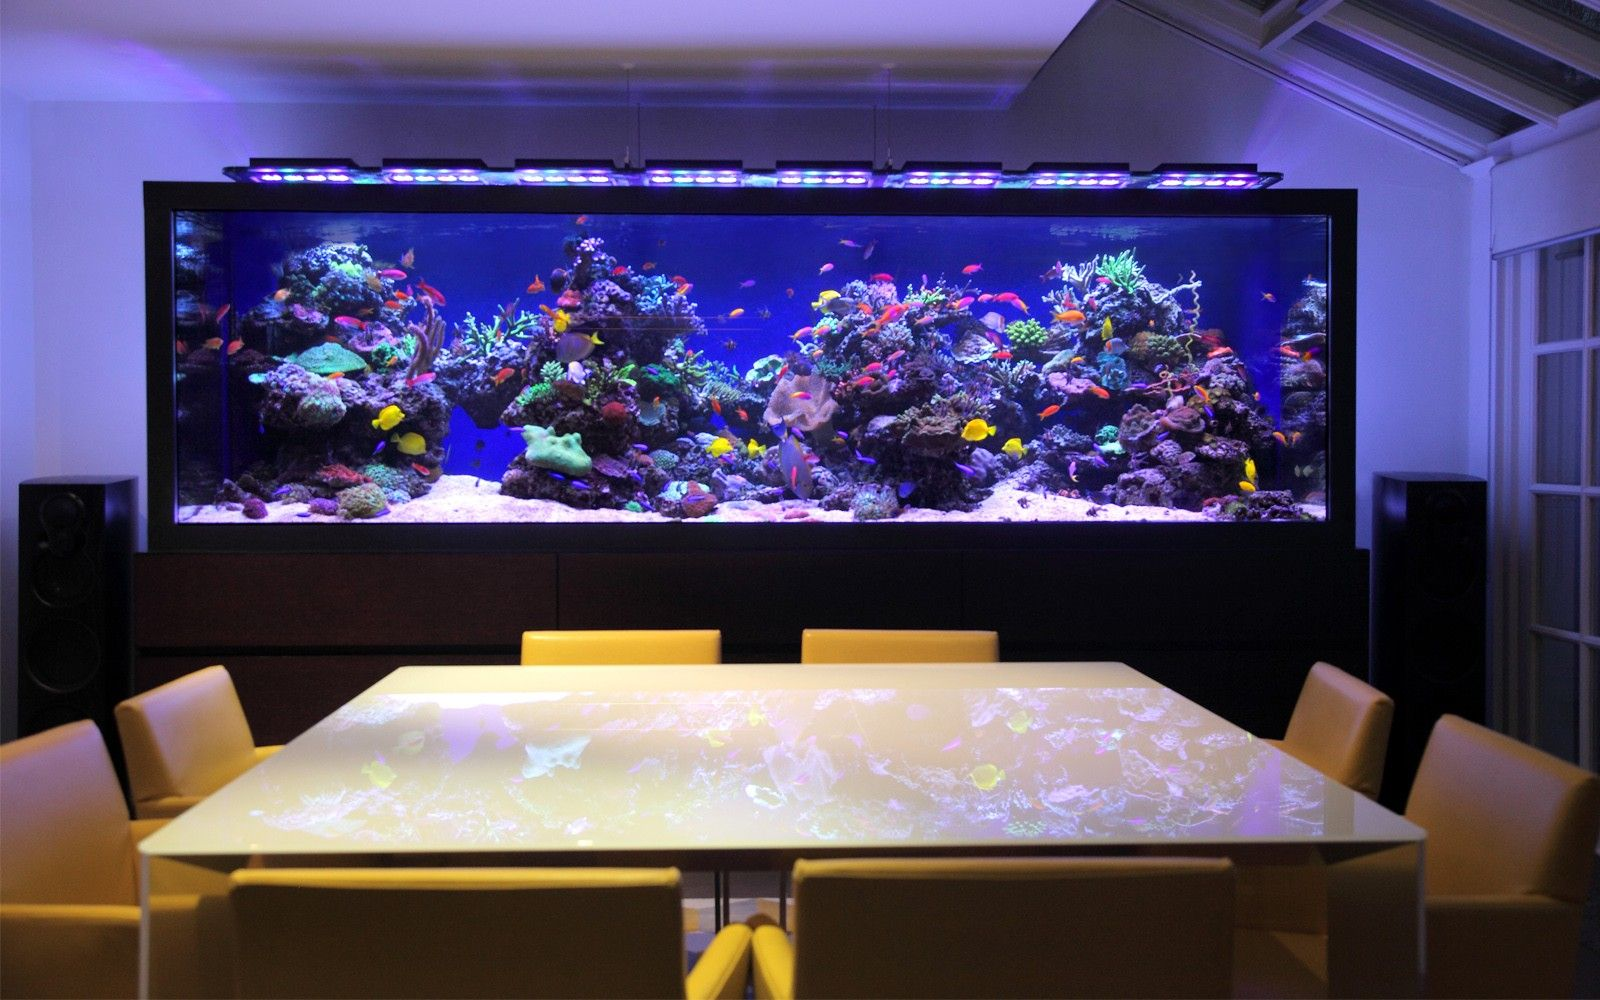 transform the way your home looks using a fish tank | marine fish